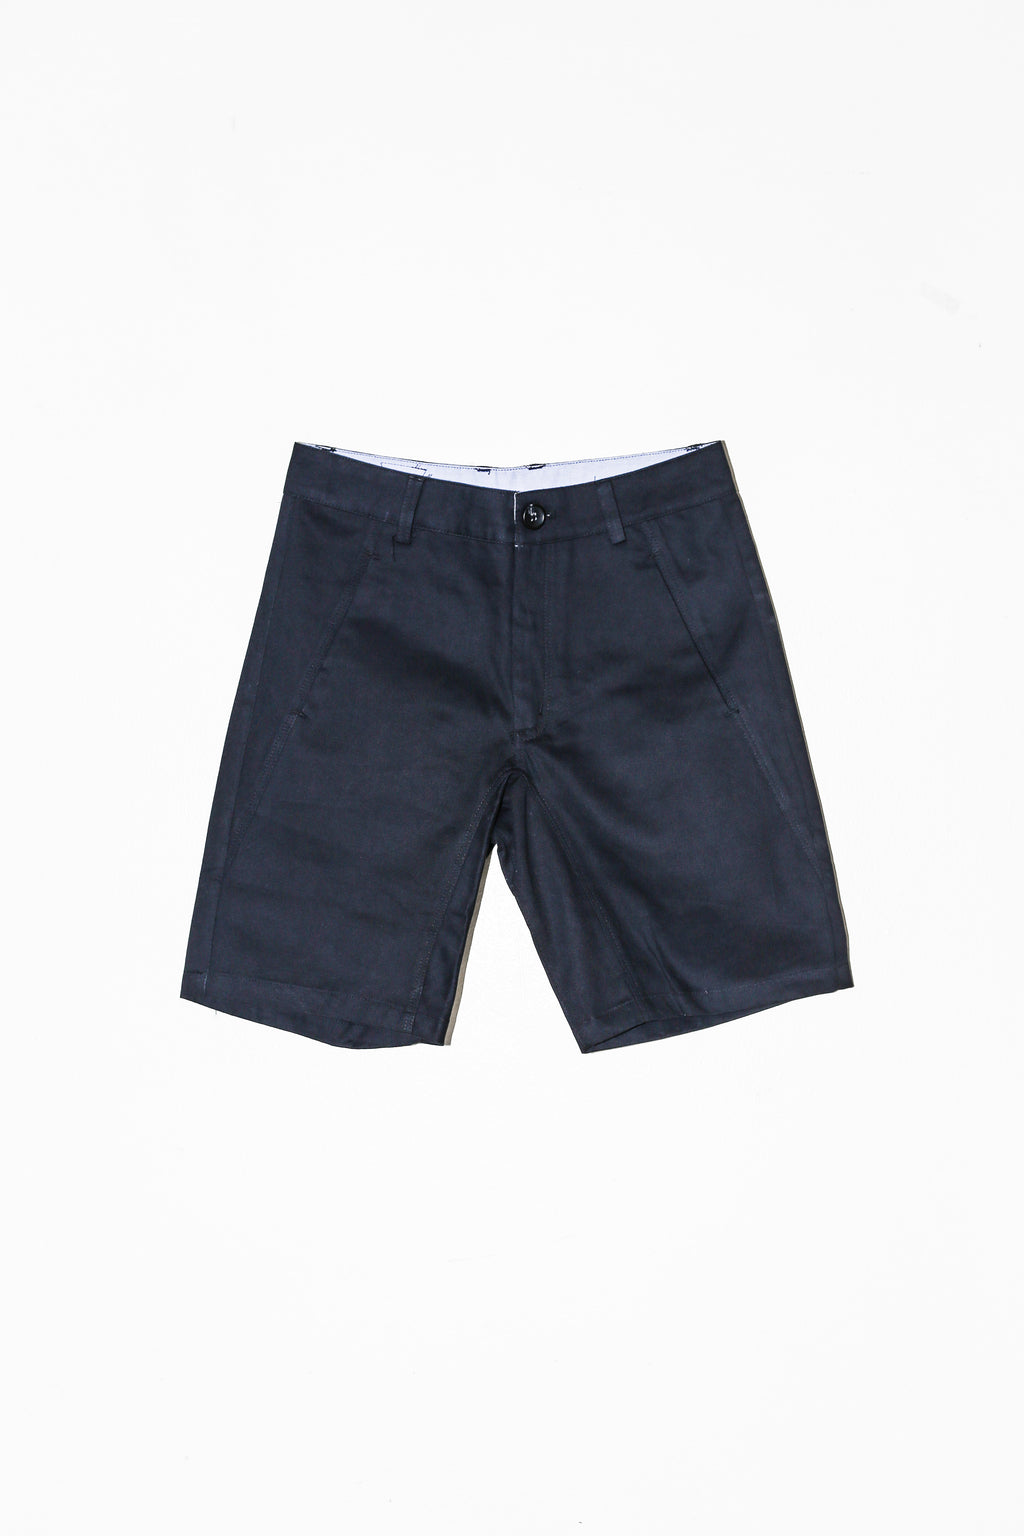 GRILLO NAVY SHORTS